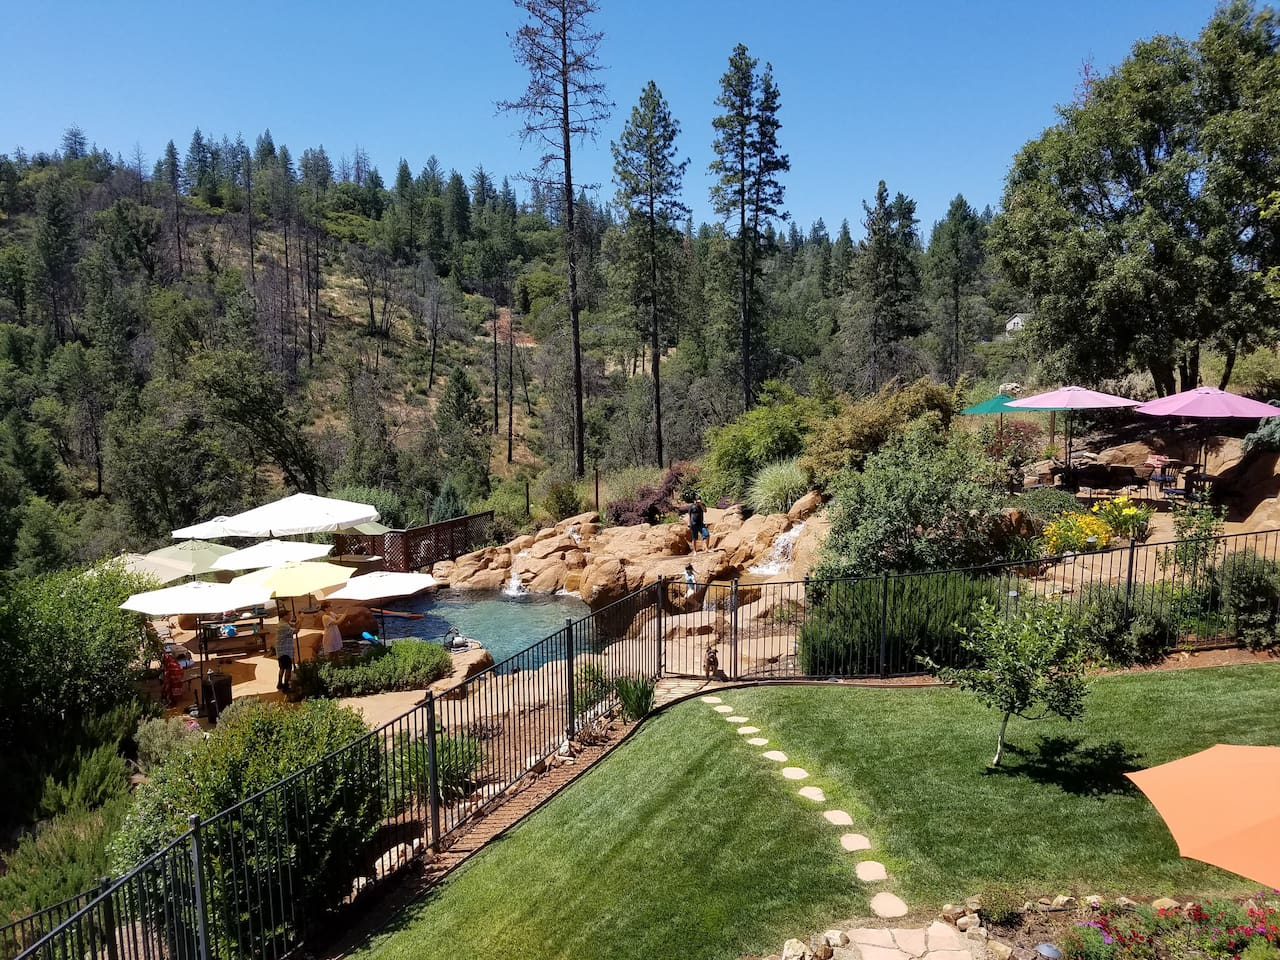 "Our ""Mini Resort"" includes 3 waterfalls, jump rocks, a shallow play area, spa, fire pit and lush gardens overlooking the forest. Close to lakes, Tahoe, Sacramento, hiking and recreational areas."